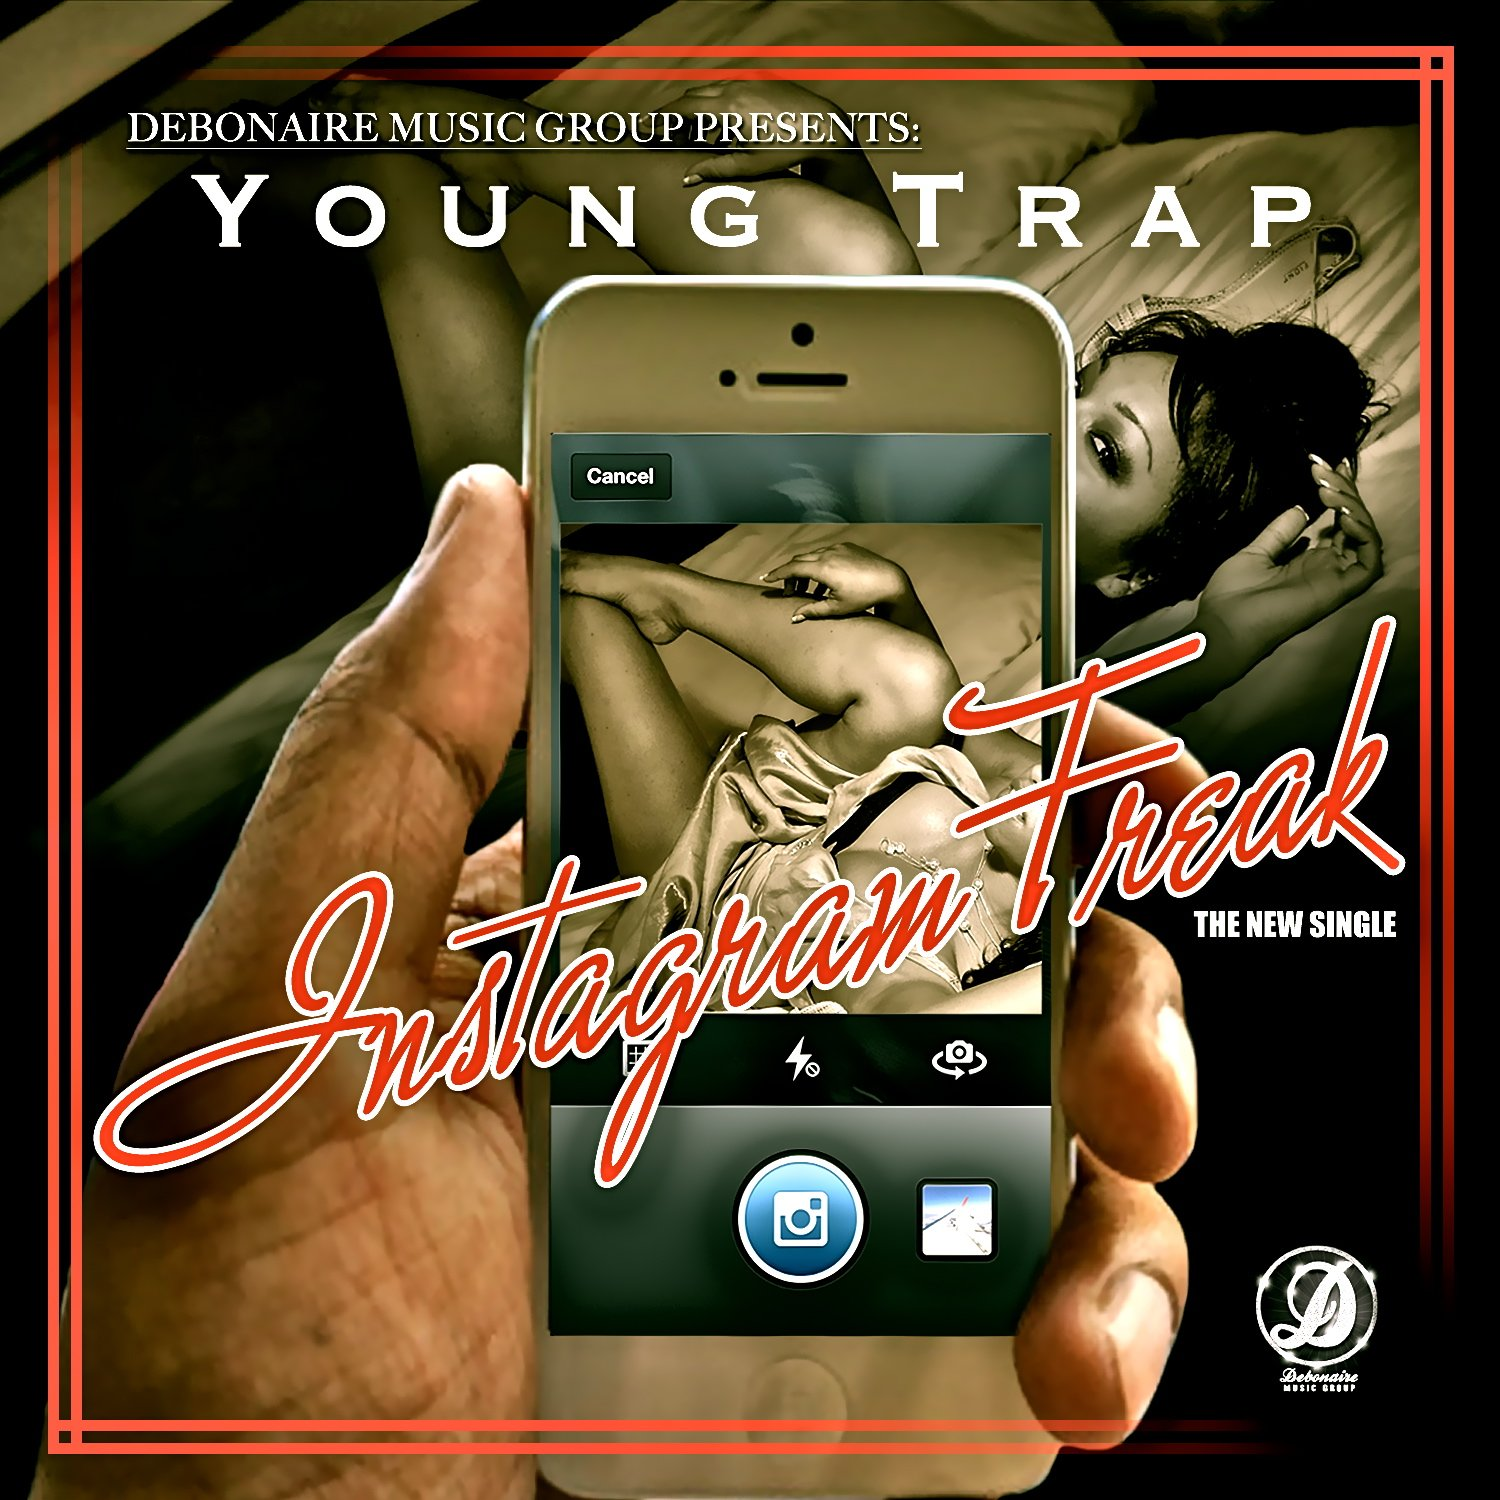 young-trap-insta-freak-5x5-cd-insert-itunes.jpg